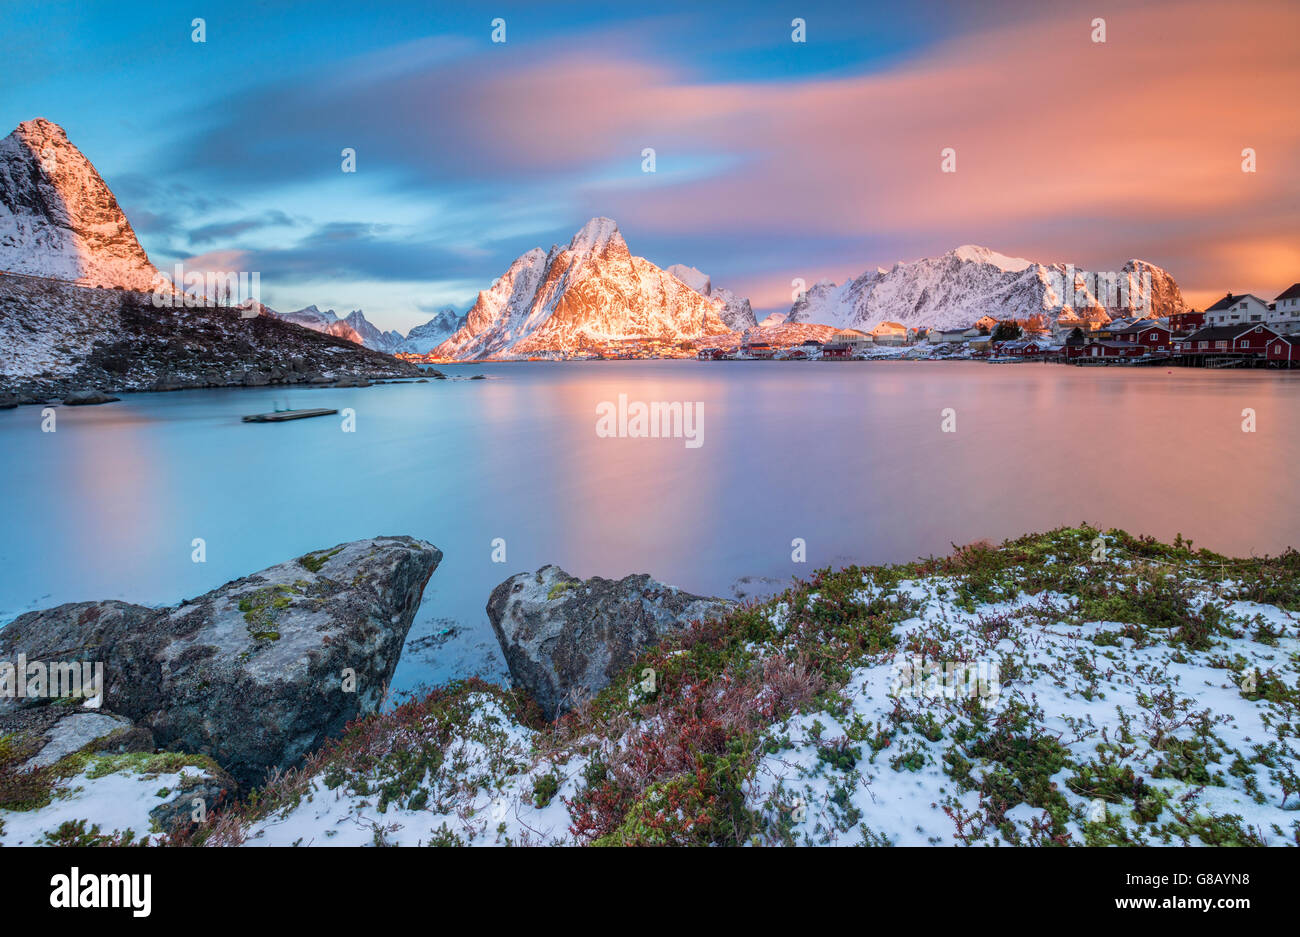 The pink sky at sunrise illuminates Reine village with its cold sea and the snowy peaks Lofoten Islands Northern - Stock Image